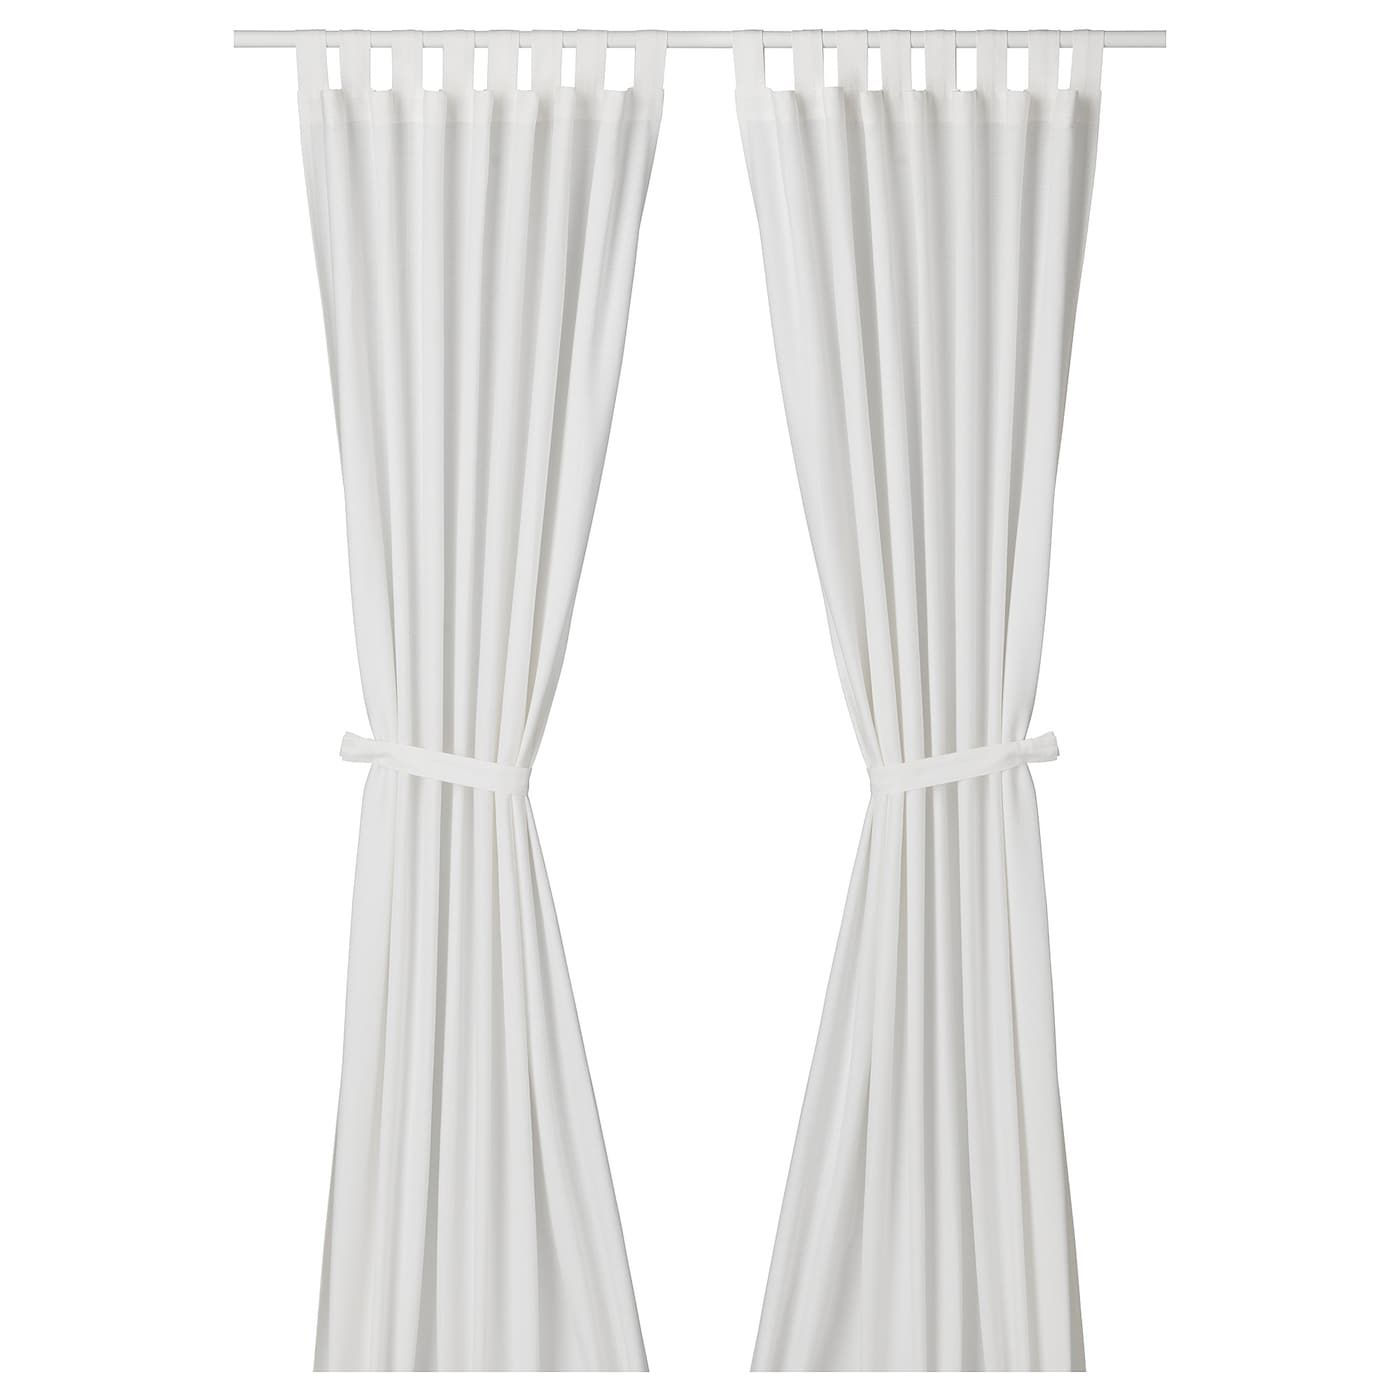 LENDA white, Curtains with tie backs, 1